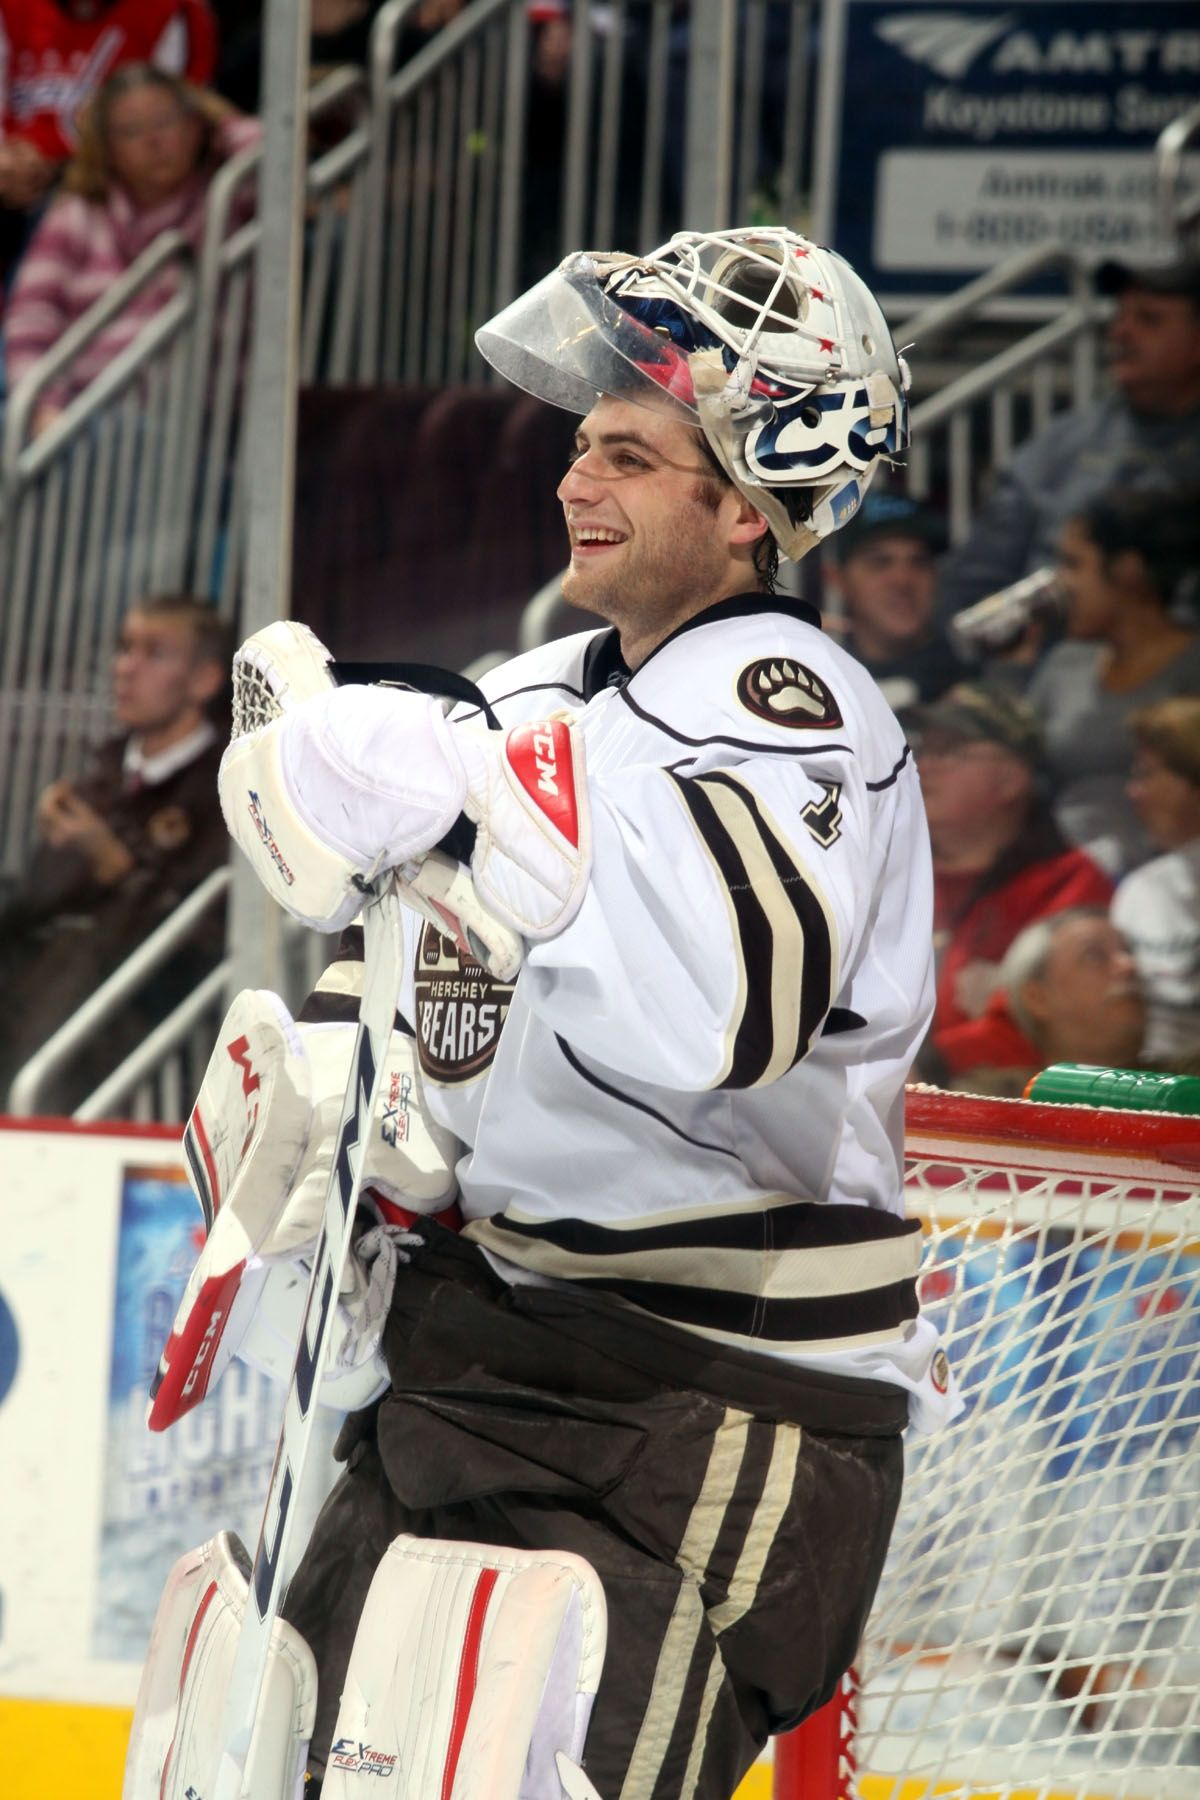 Hershey Bears Hockey Capitals Hockey Hershey Bears Hockey Players